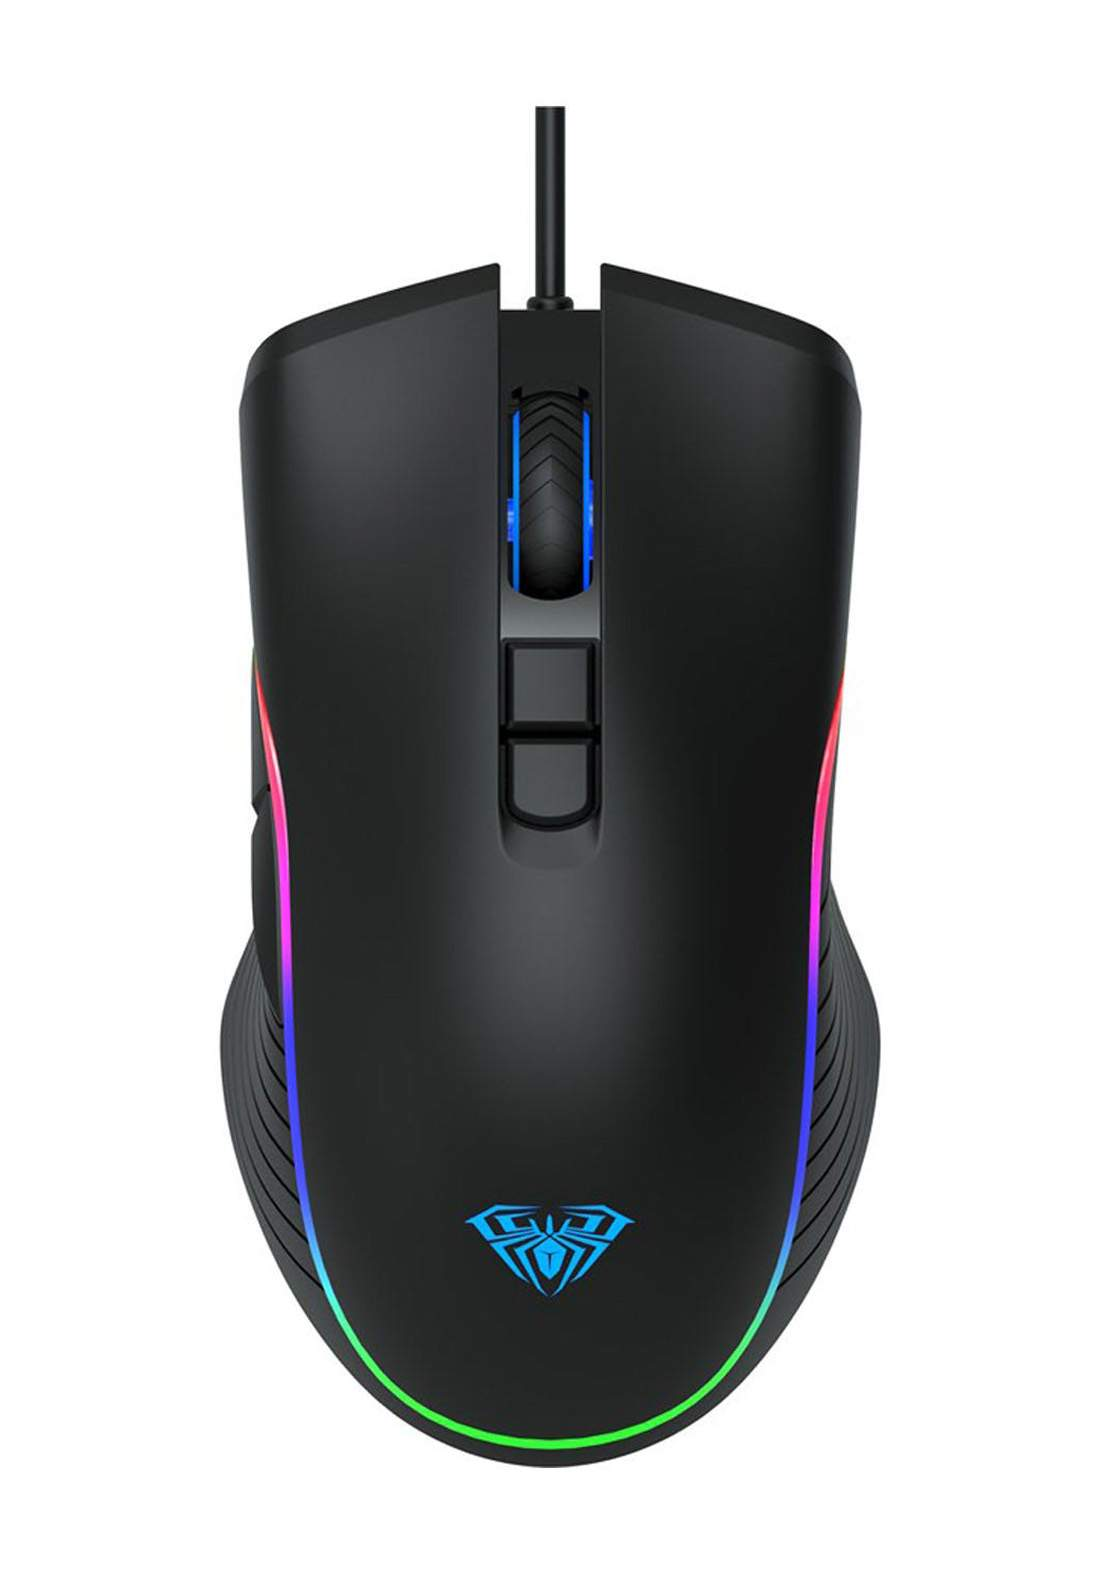 Aula F806 Wired Gaming Mouse - Black ماوس